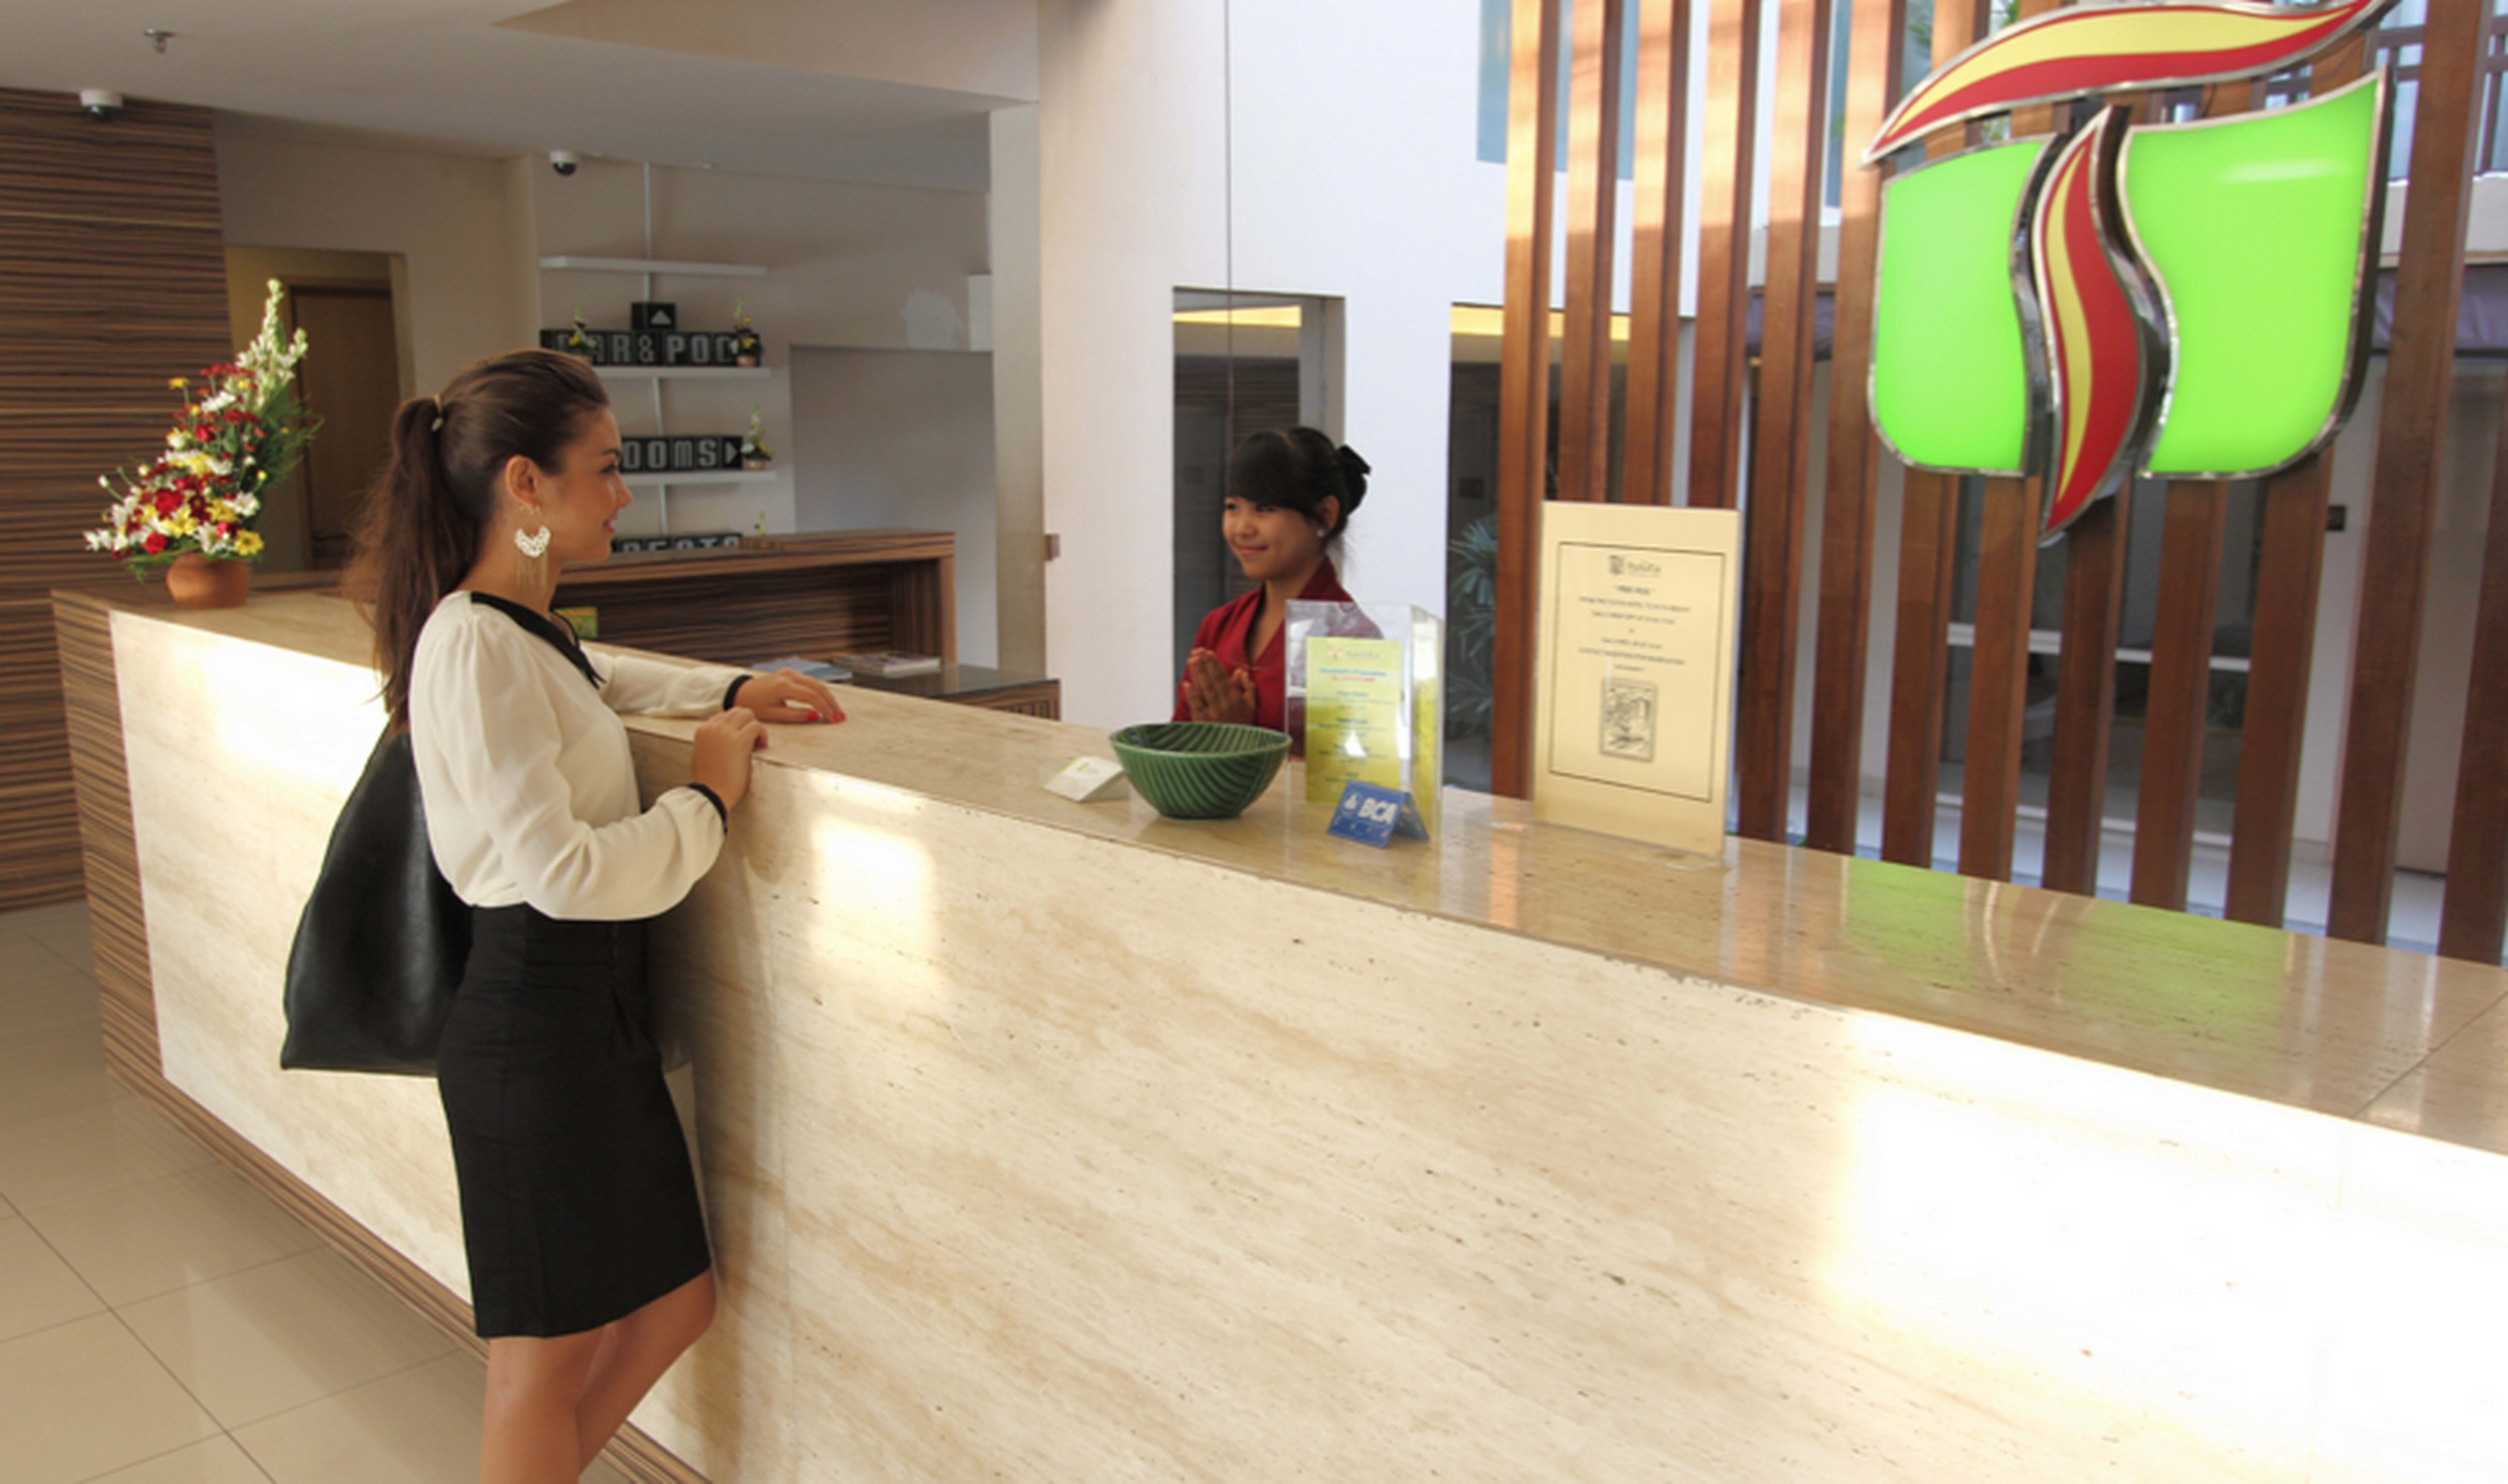 Friendly staff assist the guest at reception